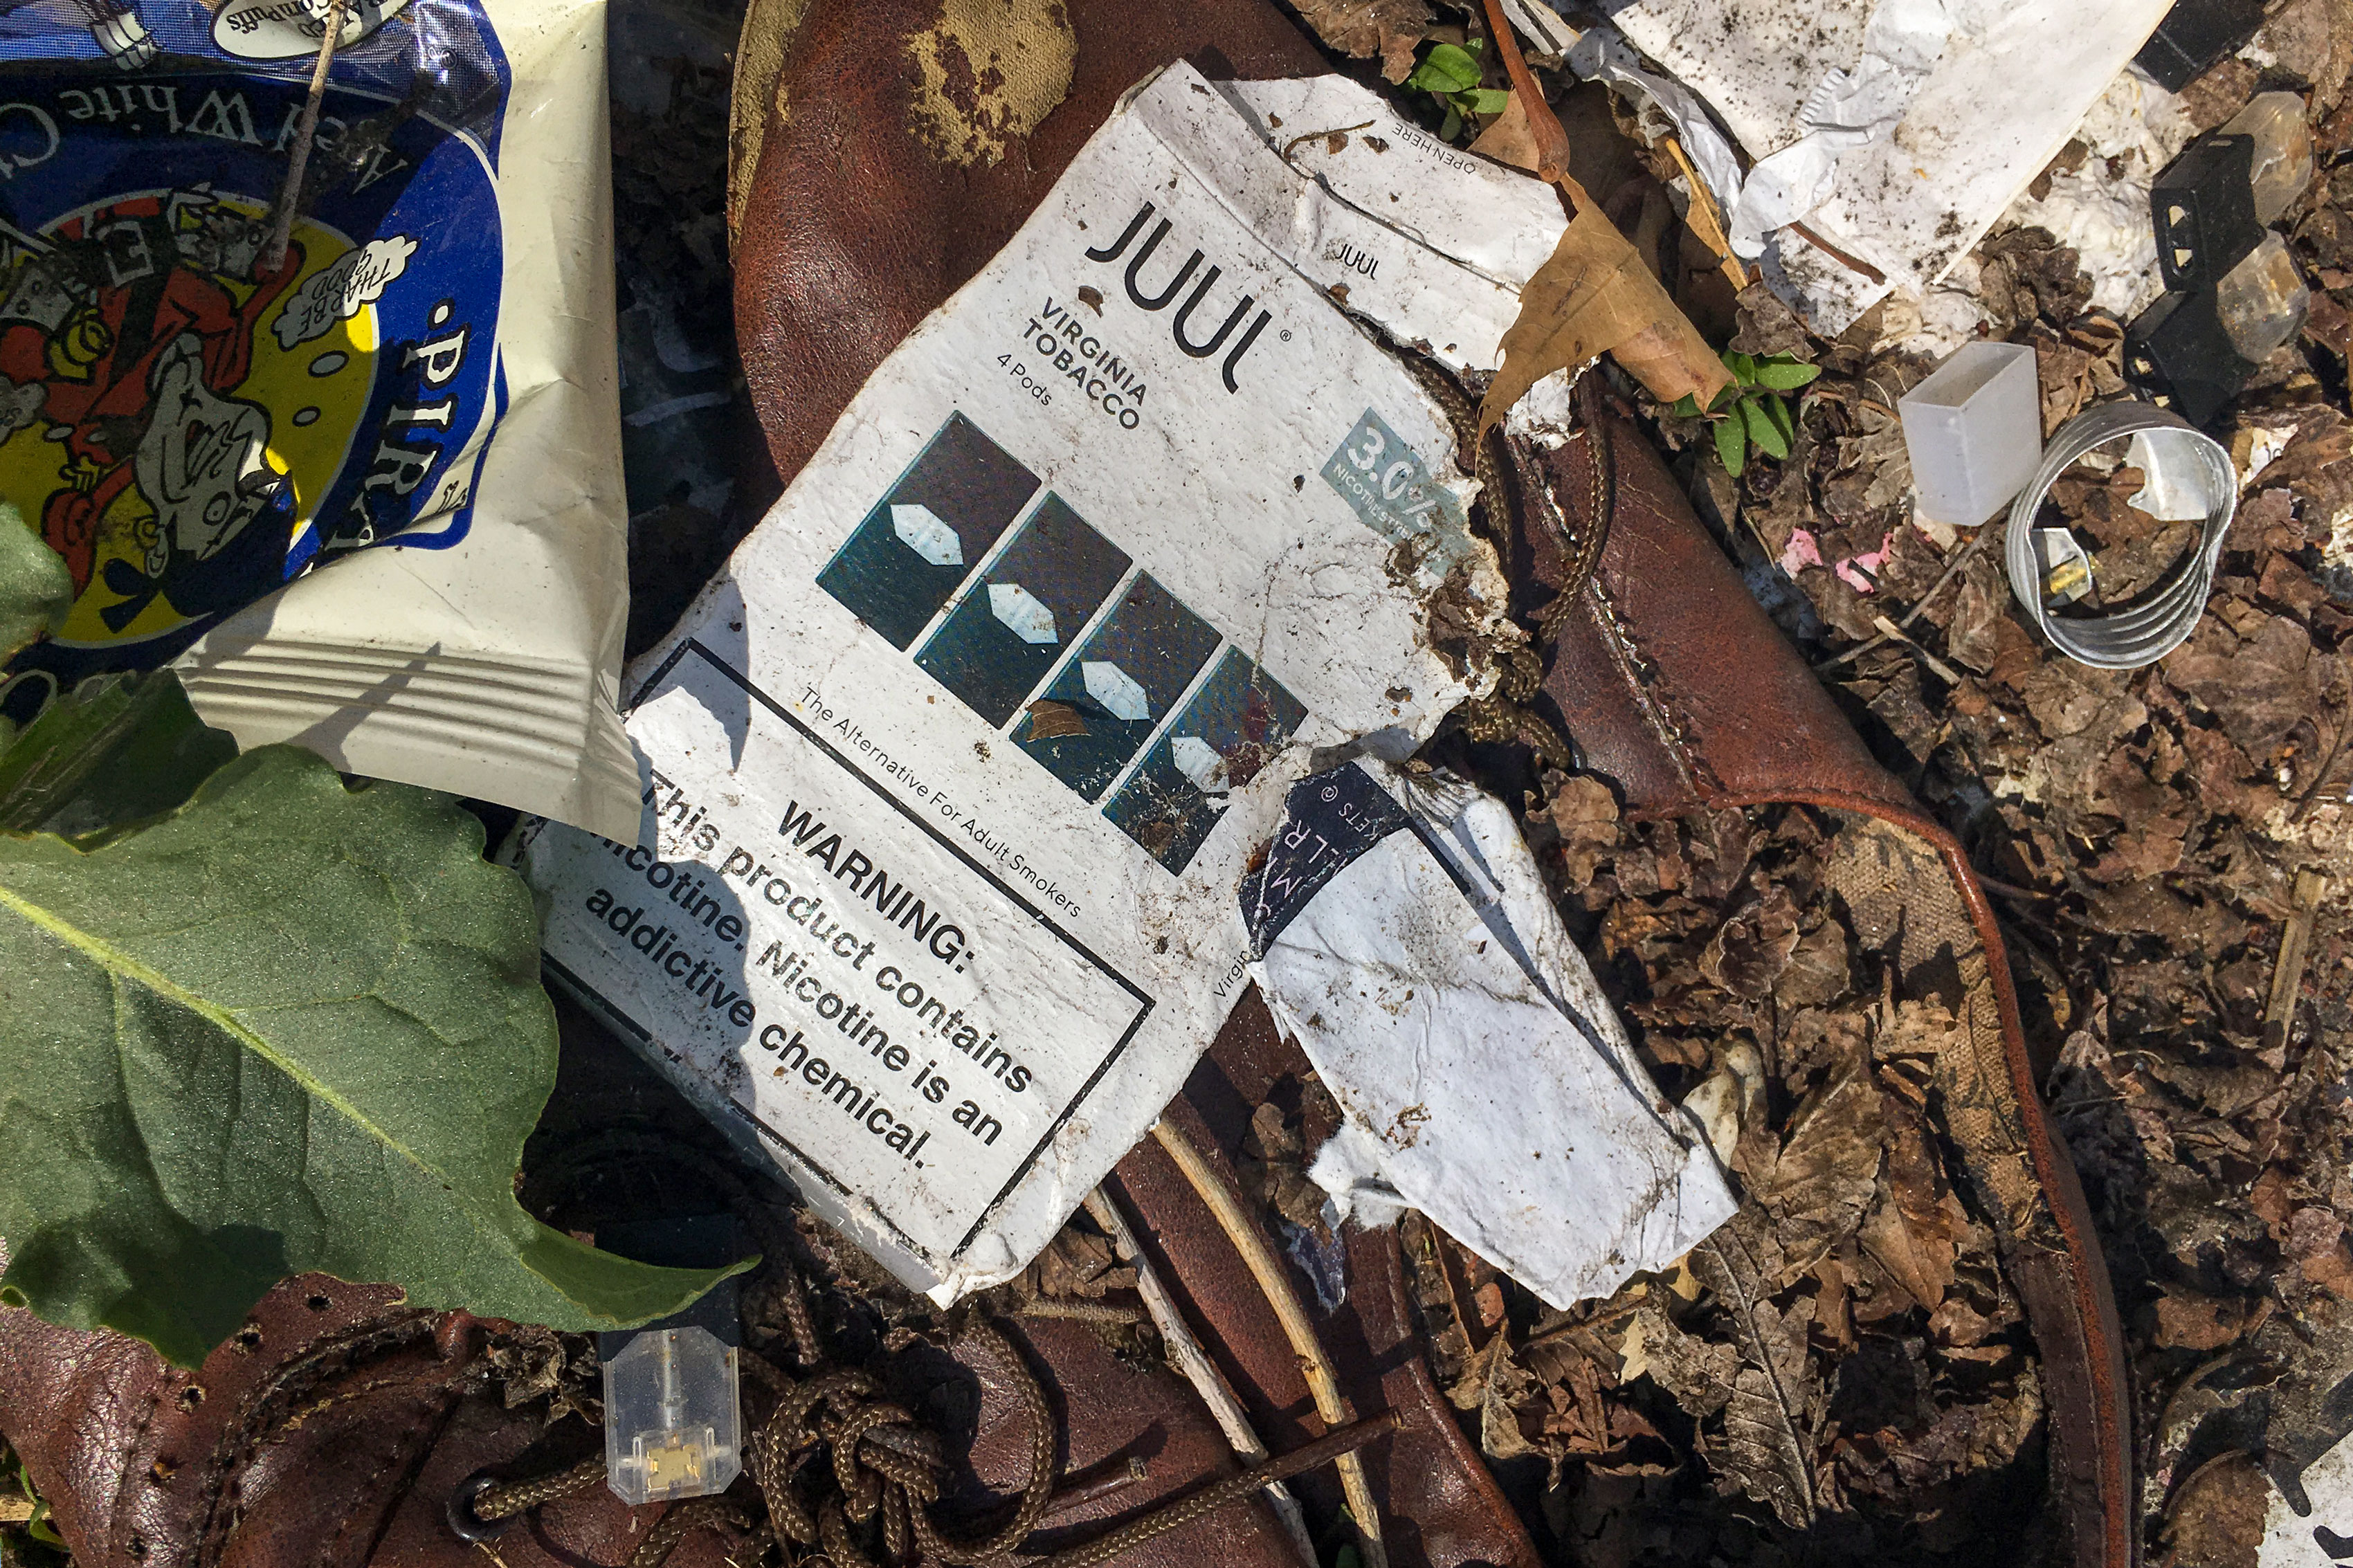 JUUL packages, devices and pods are easy to find tossed in the yards of homes near Boulder High.